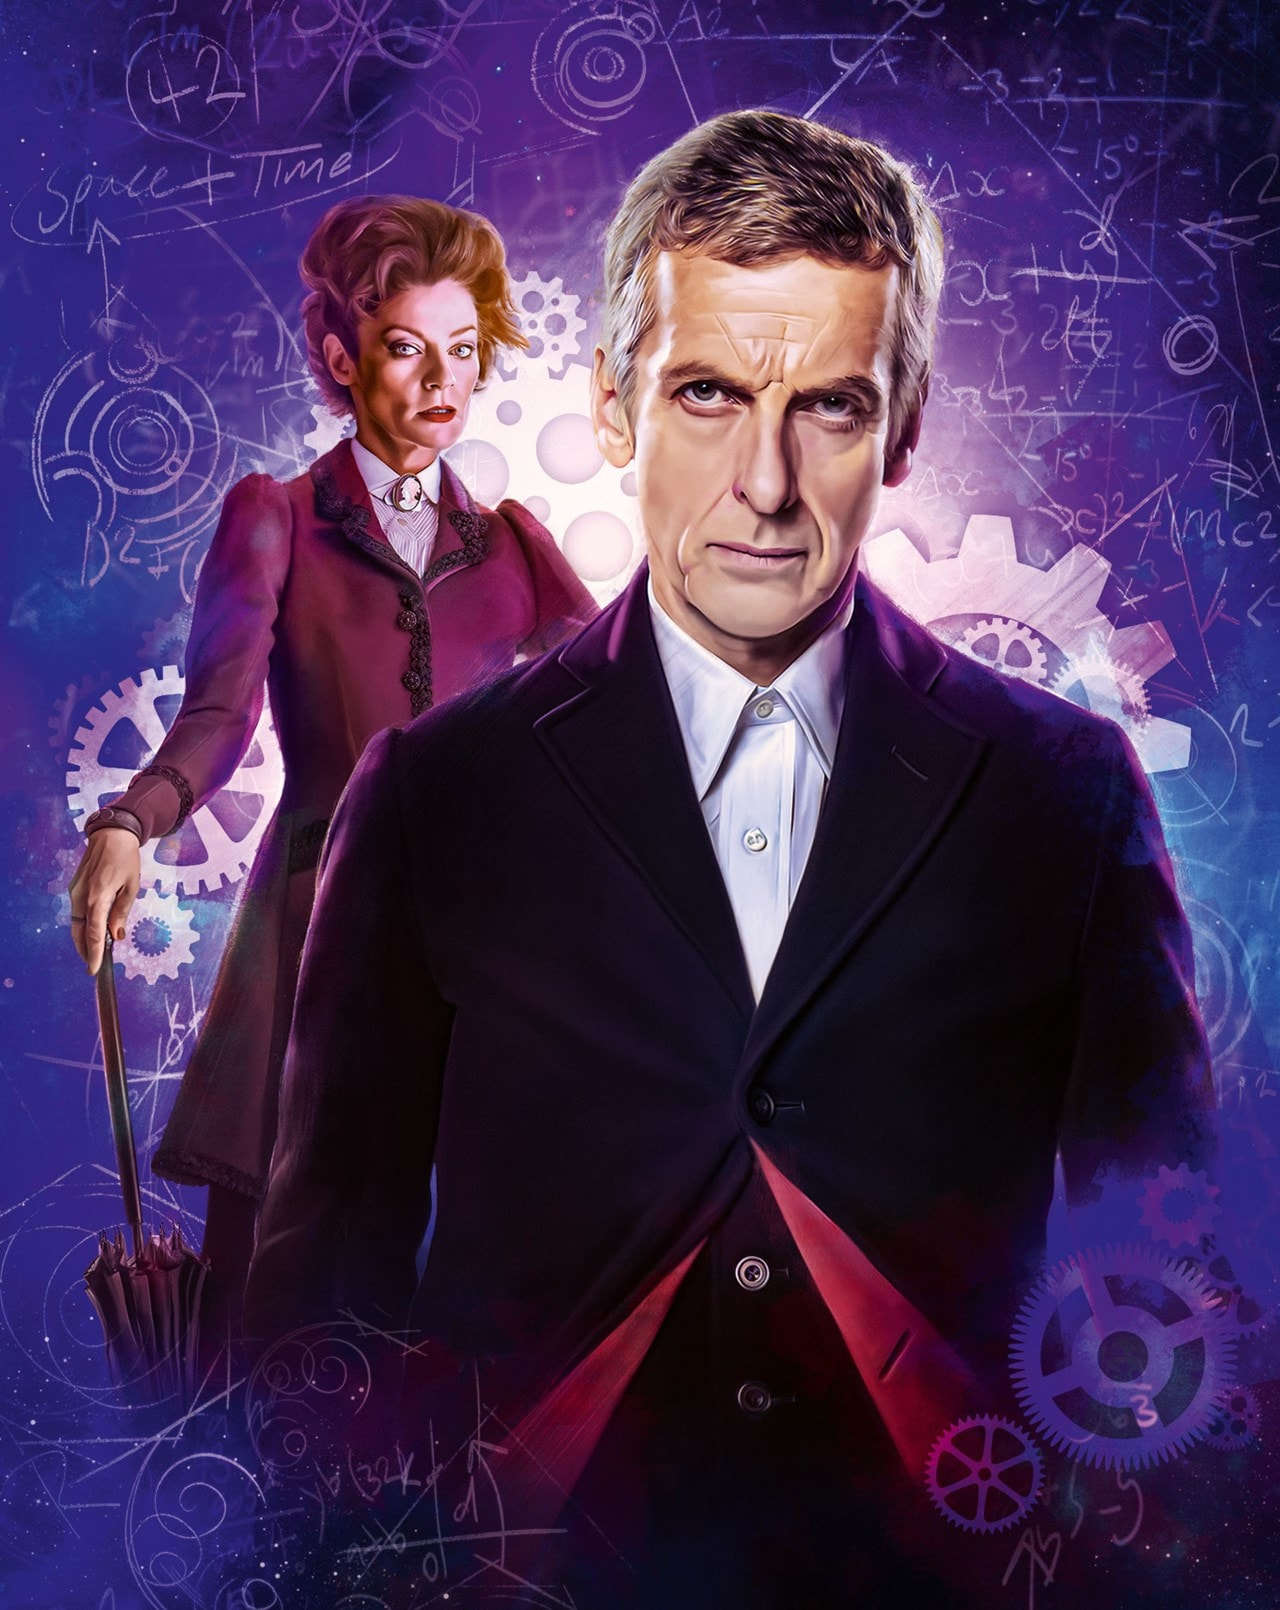 Doctor Who: The Complete Eighth Series Limited Edition Steelbook - 6